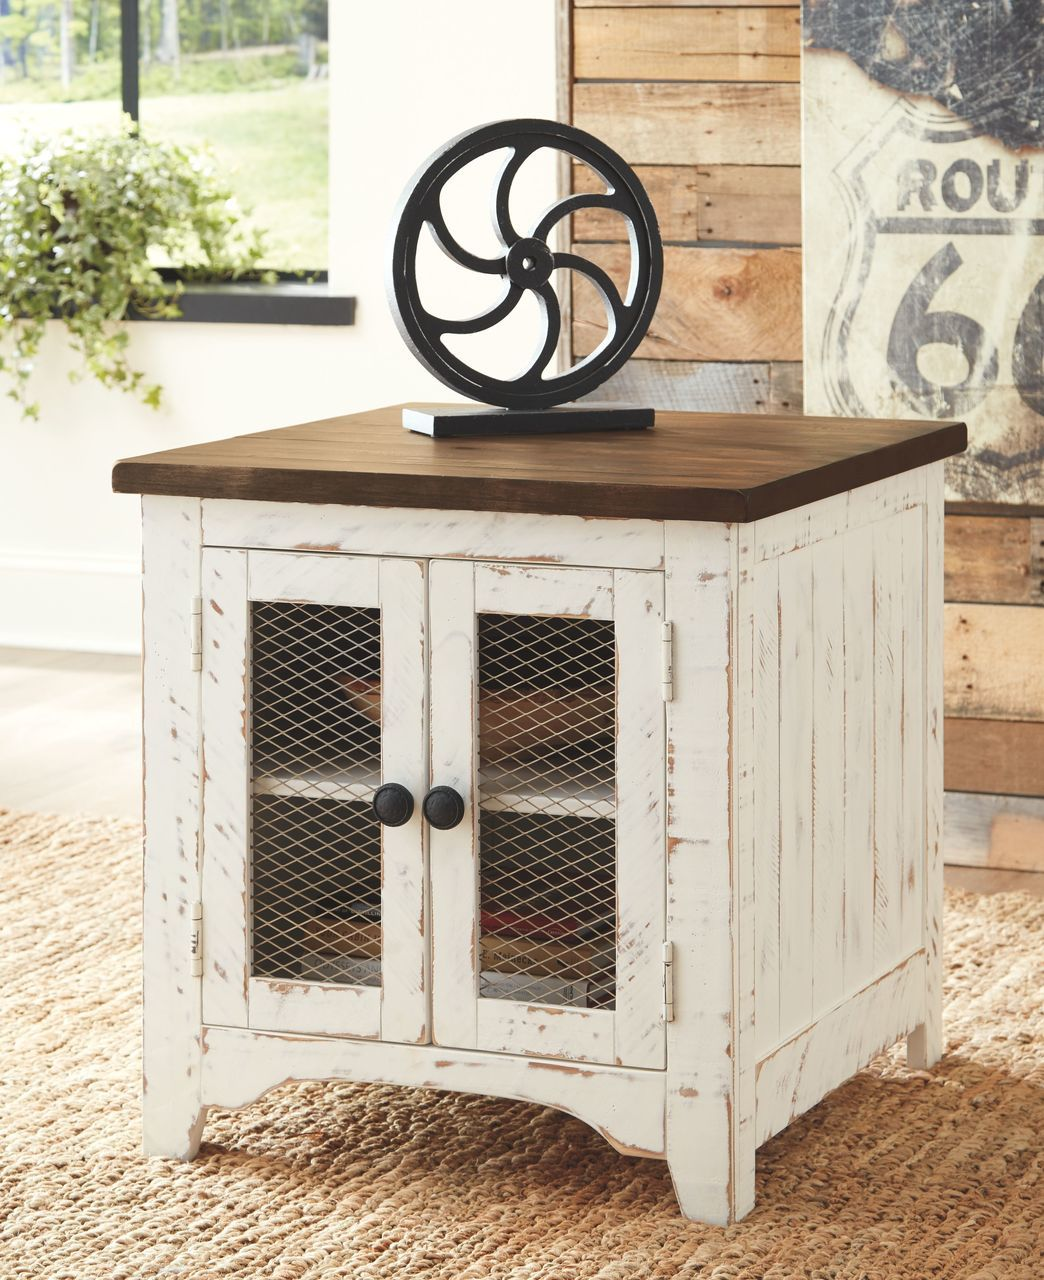 ashley wystfield white brown chair side end table wcc distressed tables small industrial galvanized pipe fittings for furniture nursery espresso leick inc oak tree stump coffee